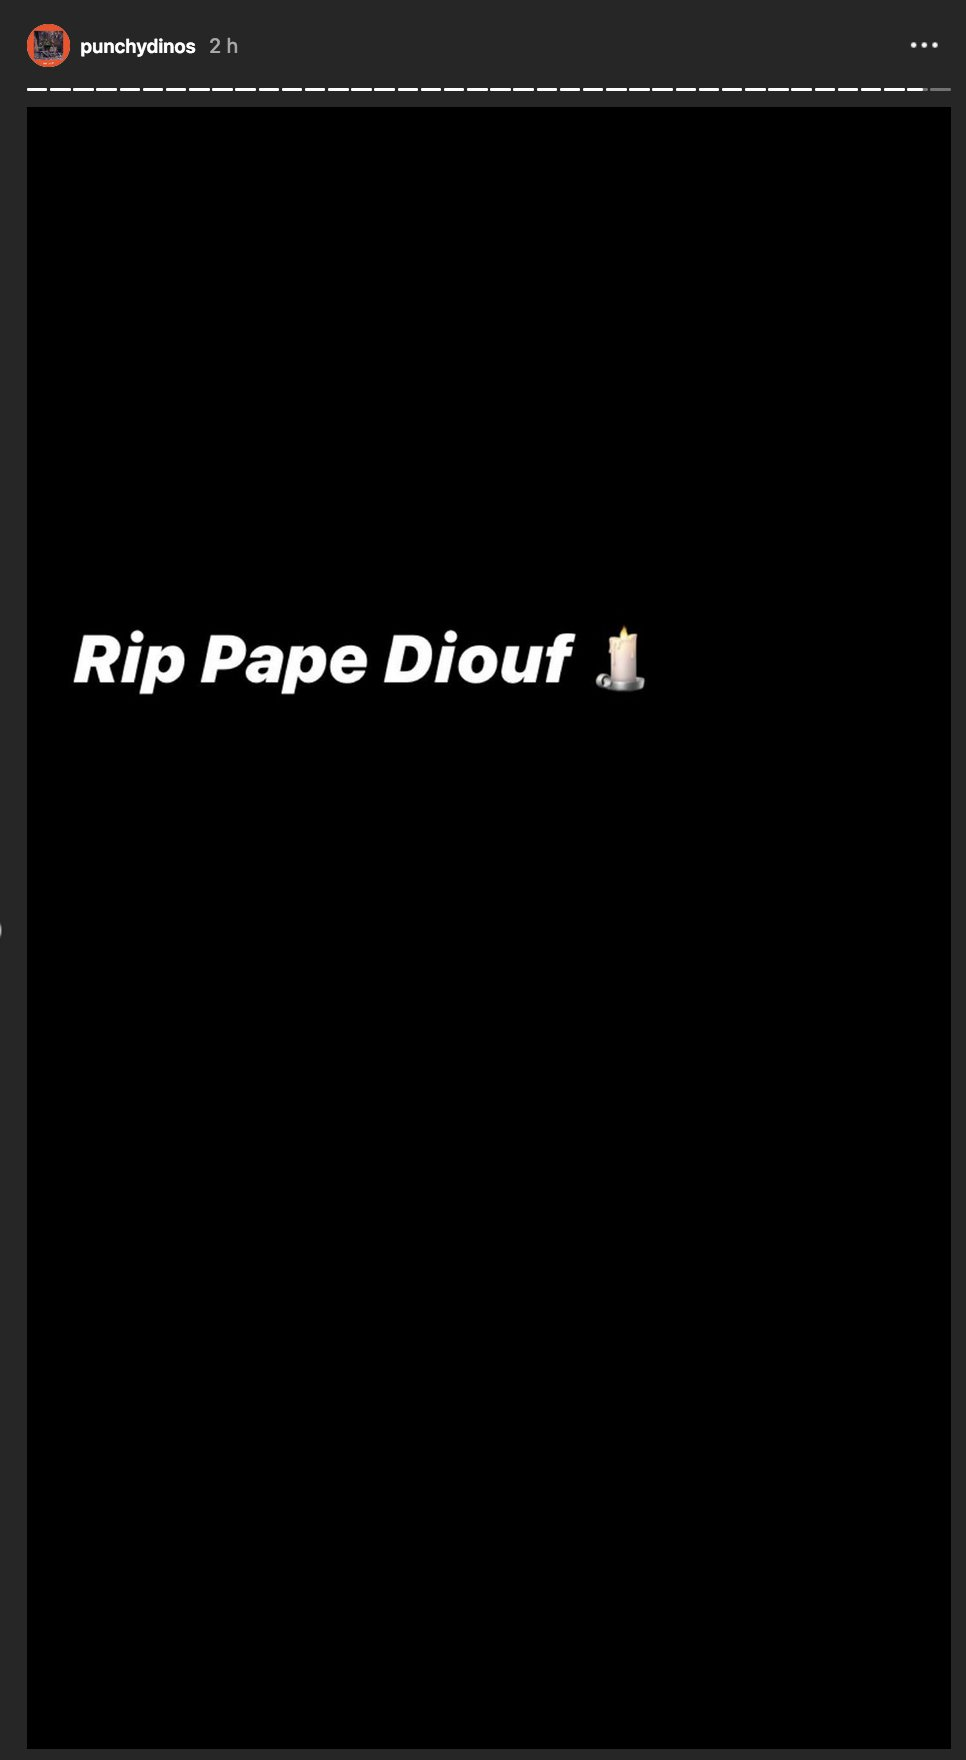 dnos-pope diouf rip